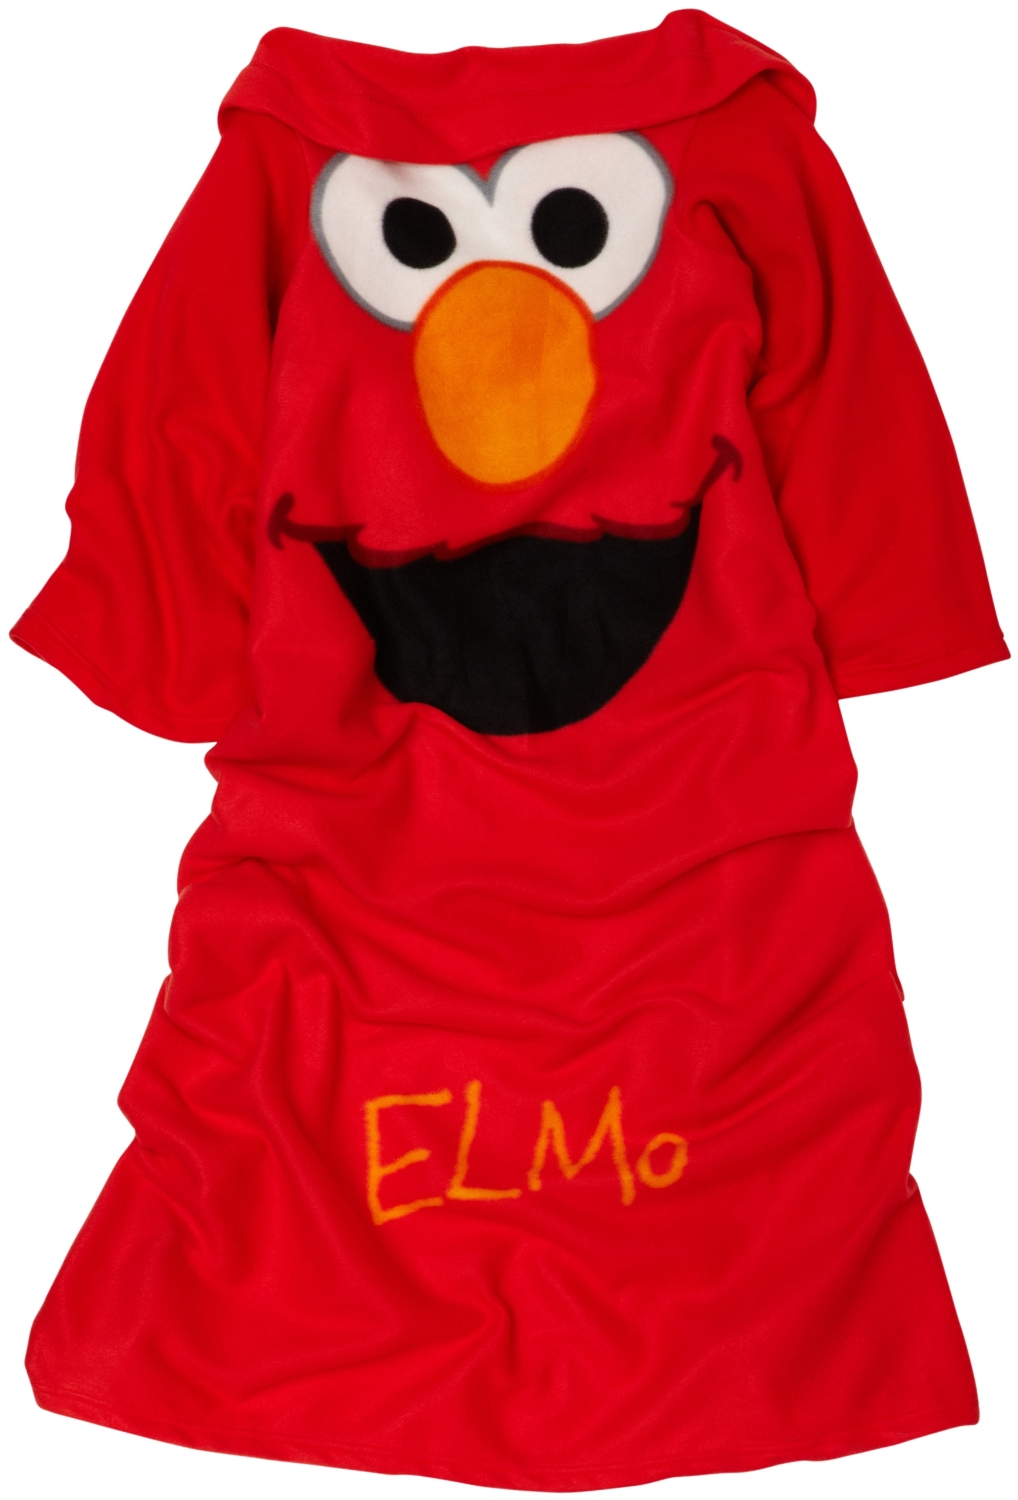 funny snuggies, sesame street snuggies, elmo snuggie, elmo blanket with arms, new snuggies,